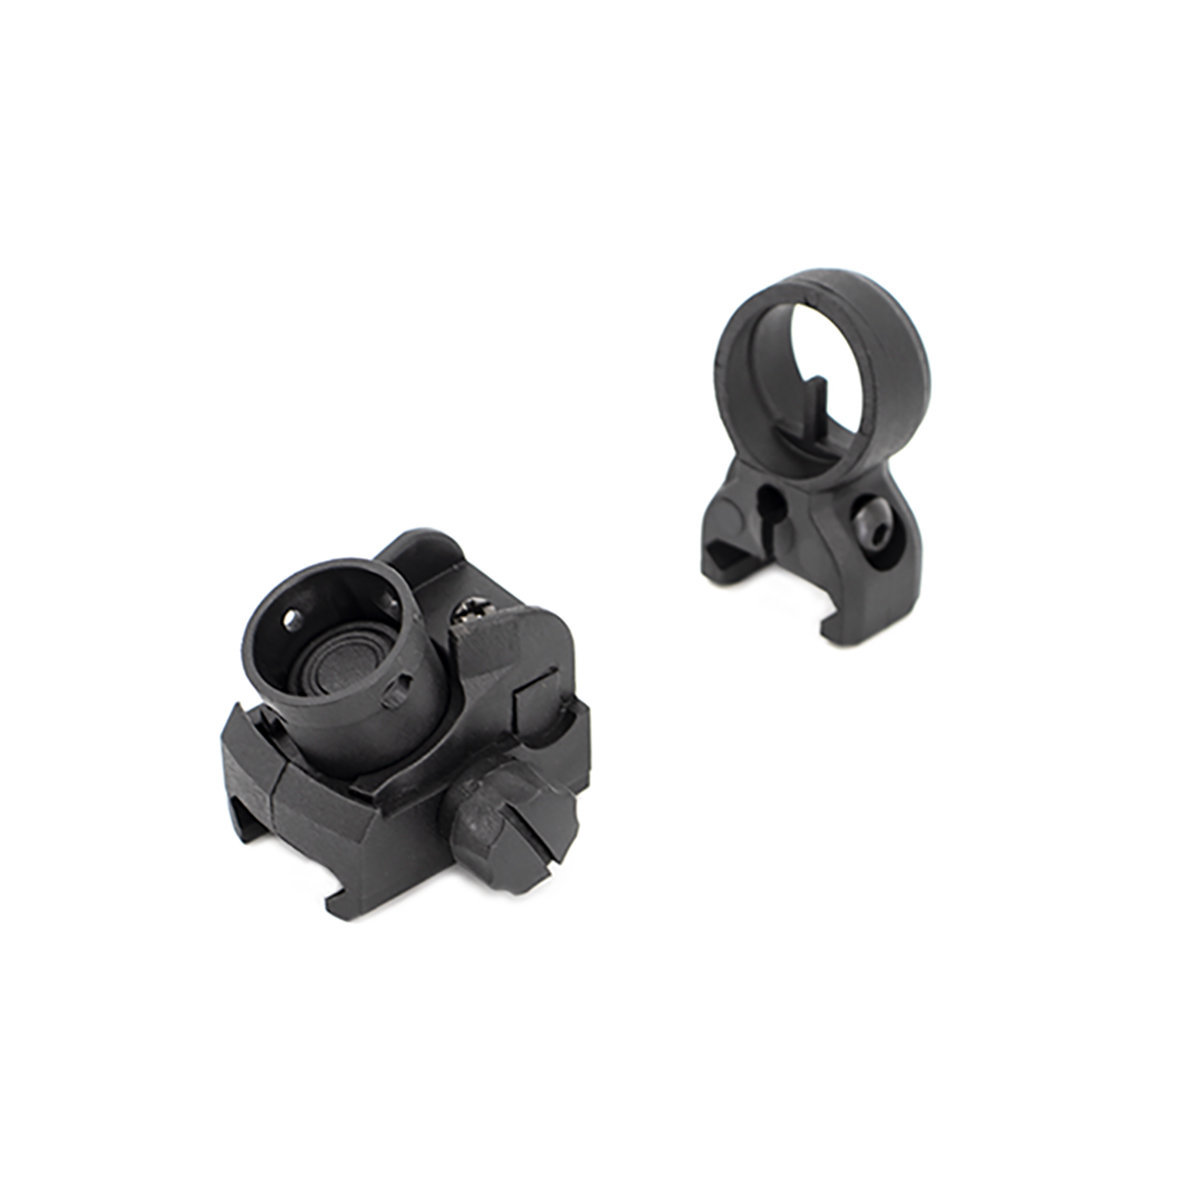 View larger image of Valken Blackhawk/SW-1 Paintball Gun Sight Kit